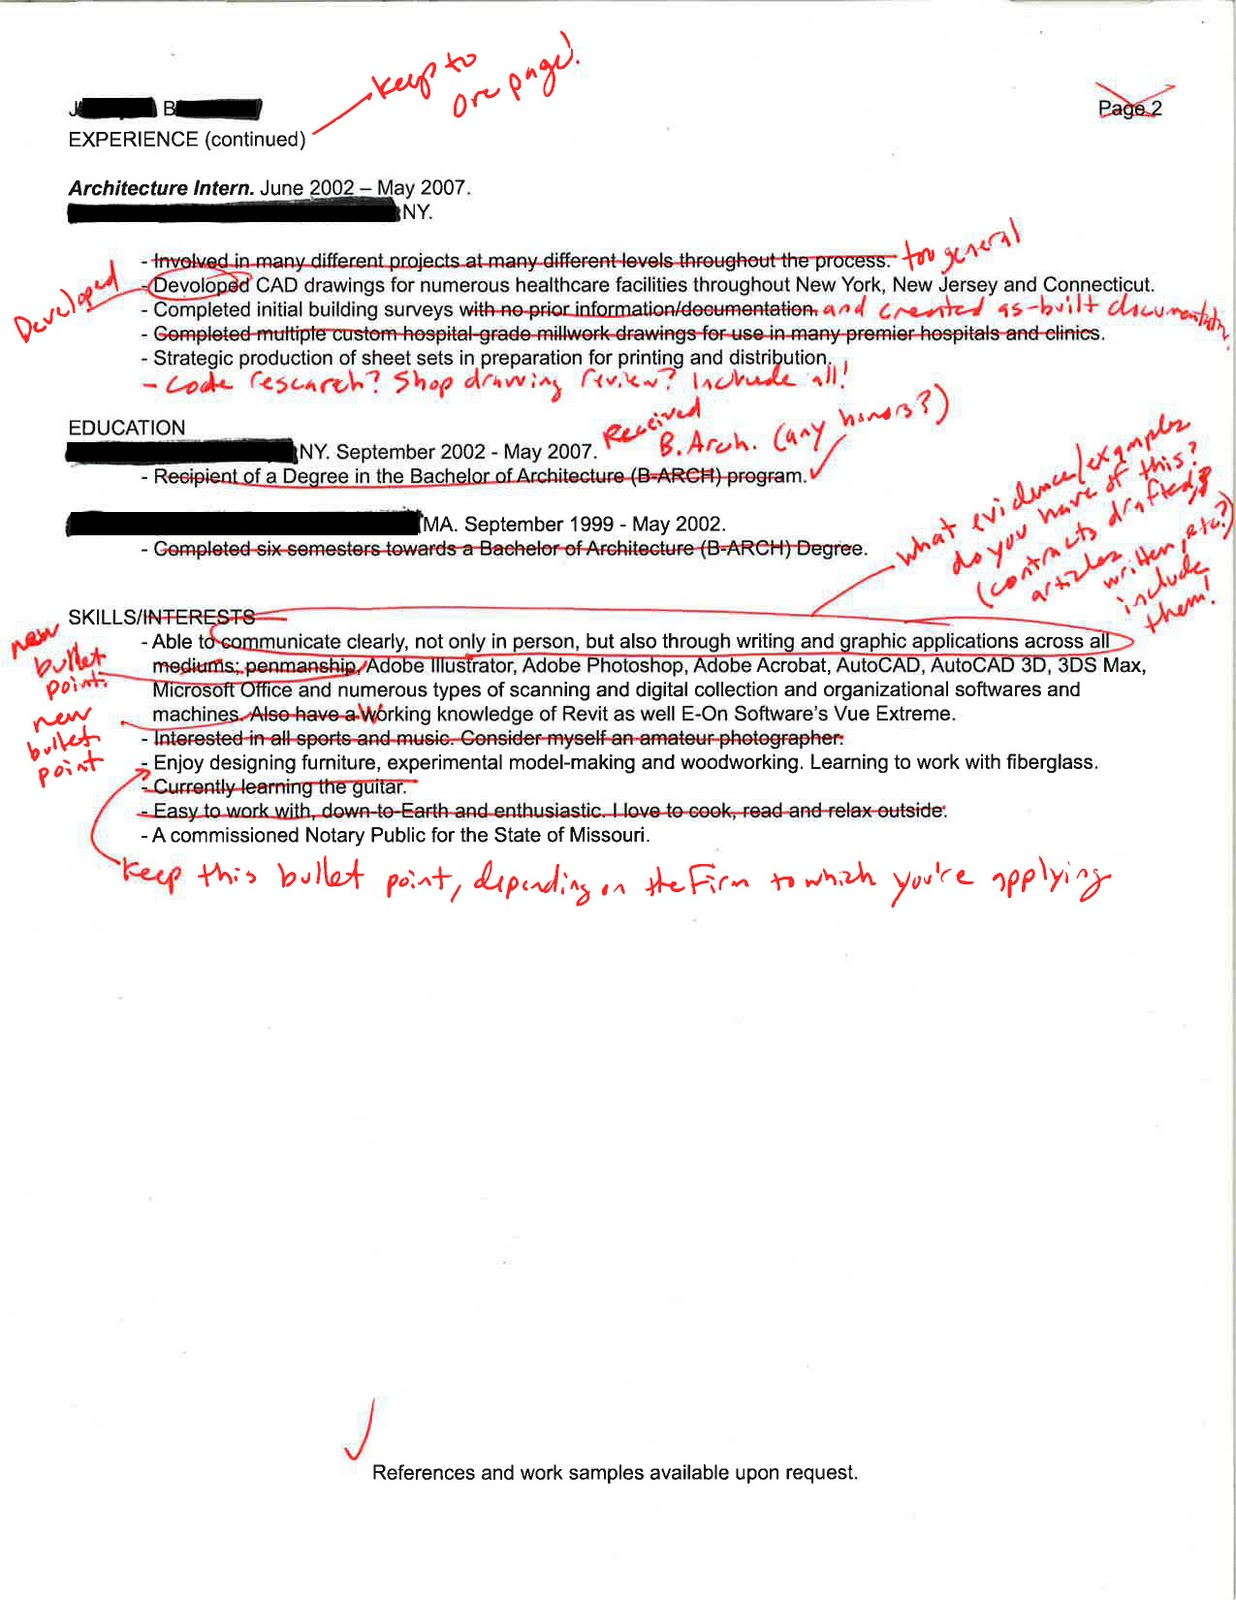 Essay Writing Service Reviews - Real time Reviews from Essay Writing ...